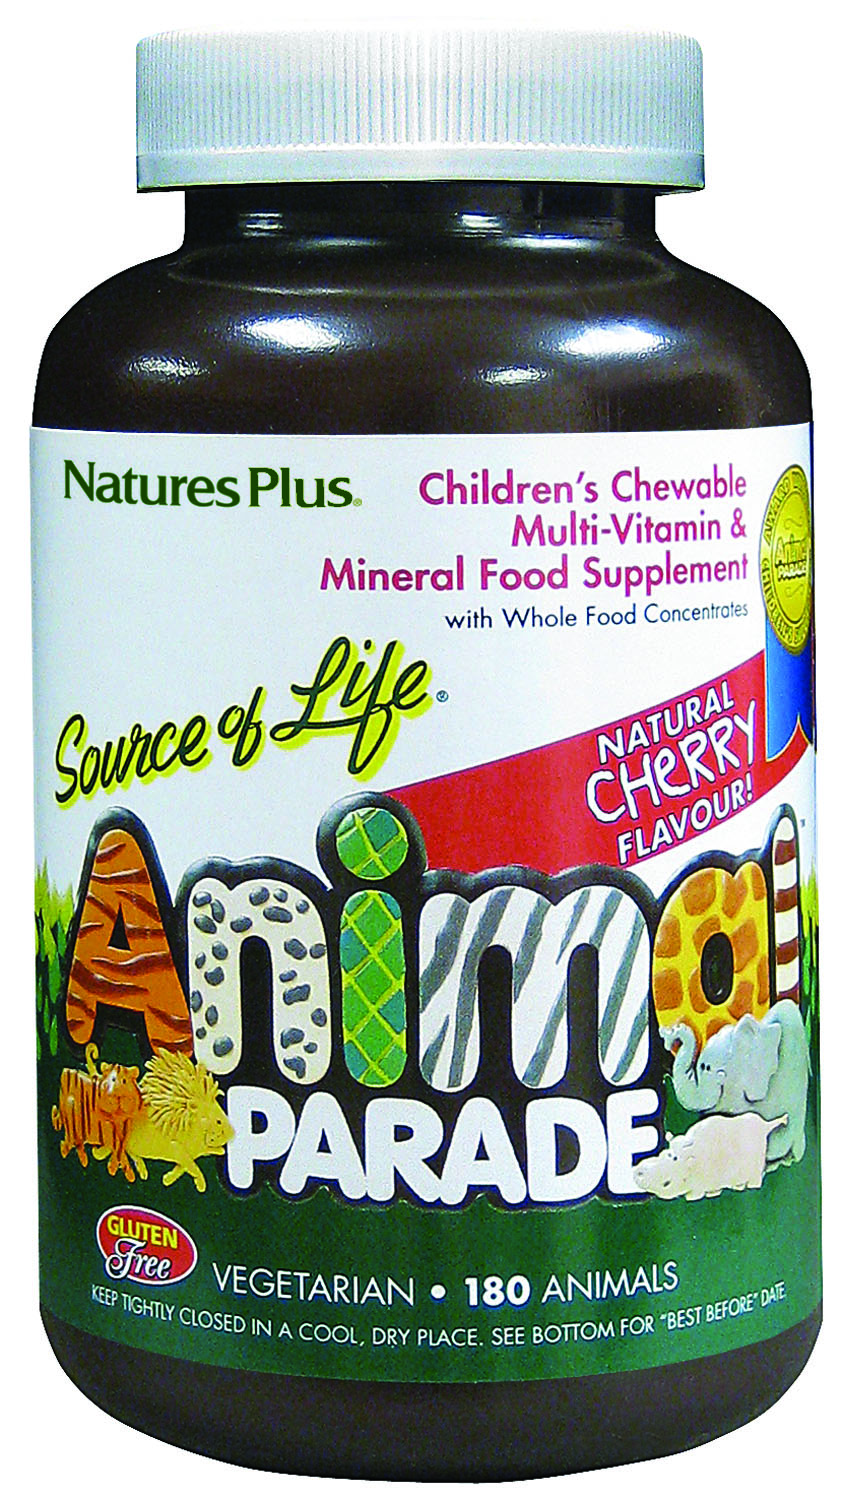 Source of Life Animal Parade Natural Cherry Flavour 180's